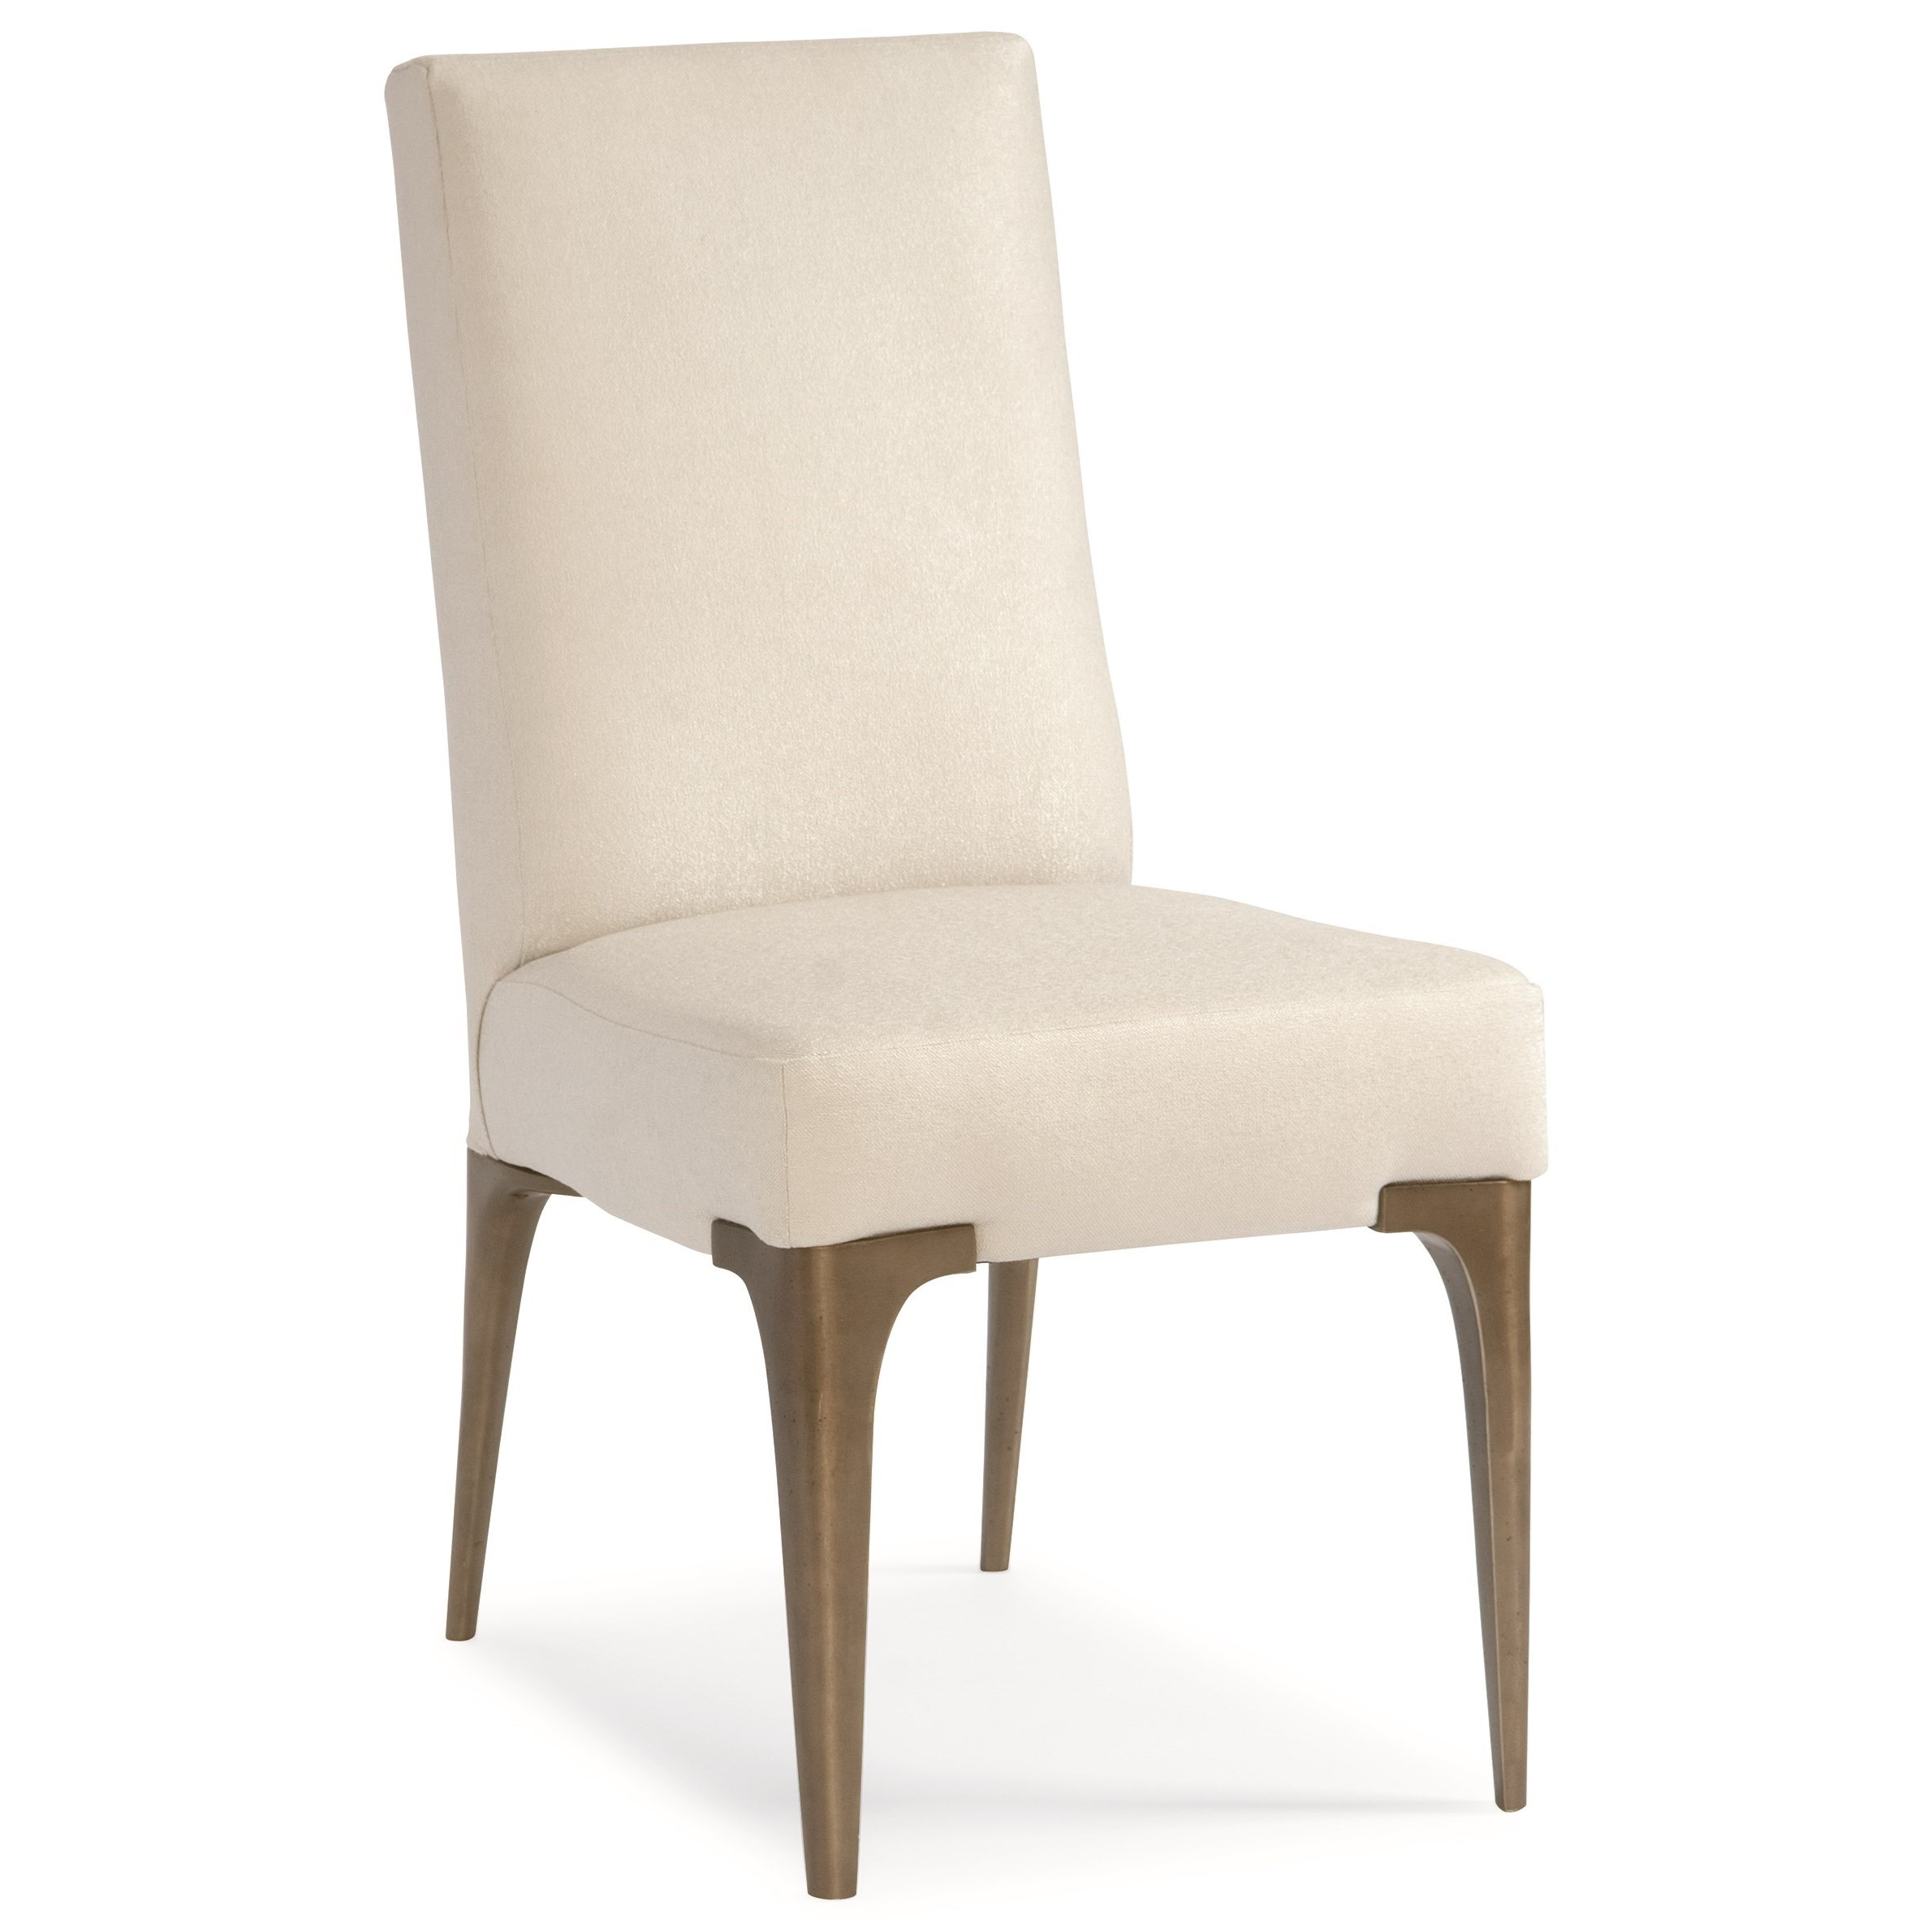 """Caracole Classic """"Cold Feet"""" Upholstered Chair by Caracole at Baer's Furniture"""